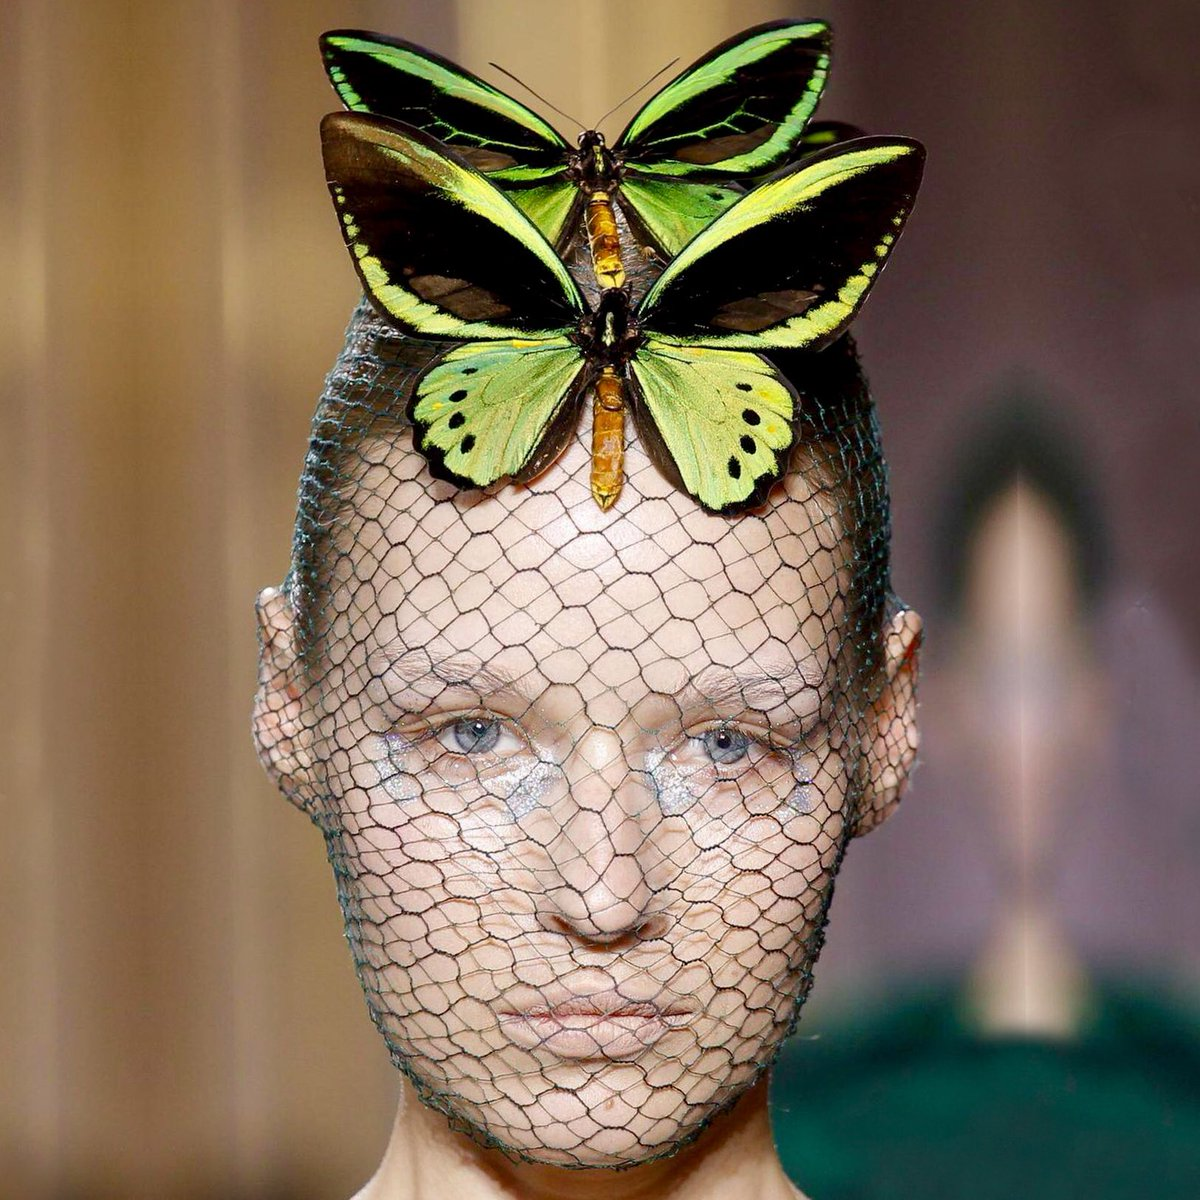 Makeup by Val Garland for Giambattista Valli Fall 2012 Couture. https://t.co/JMkoce0l19